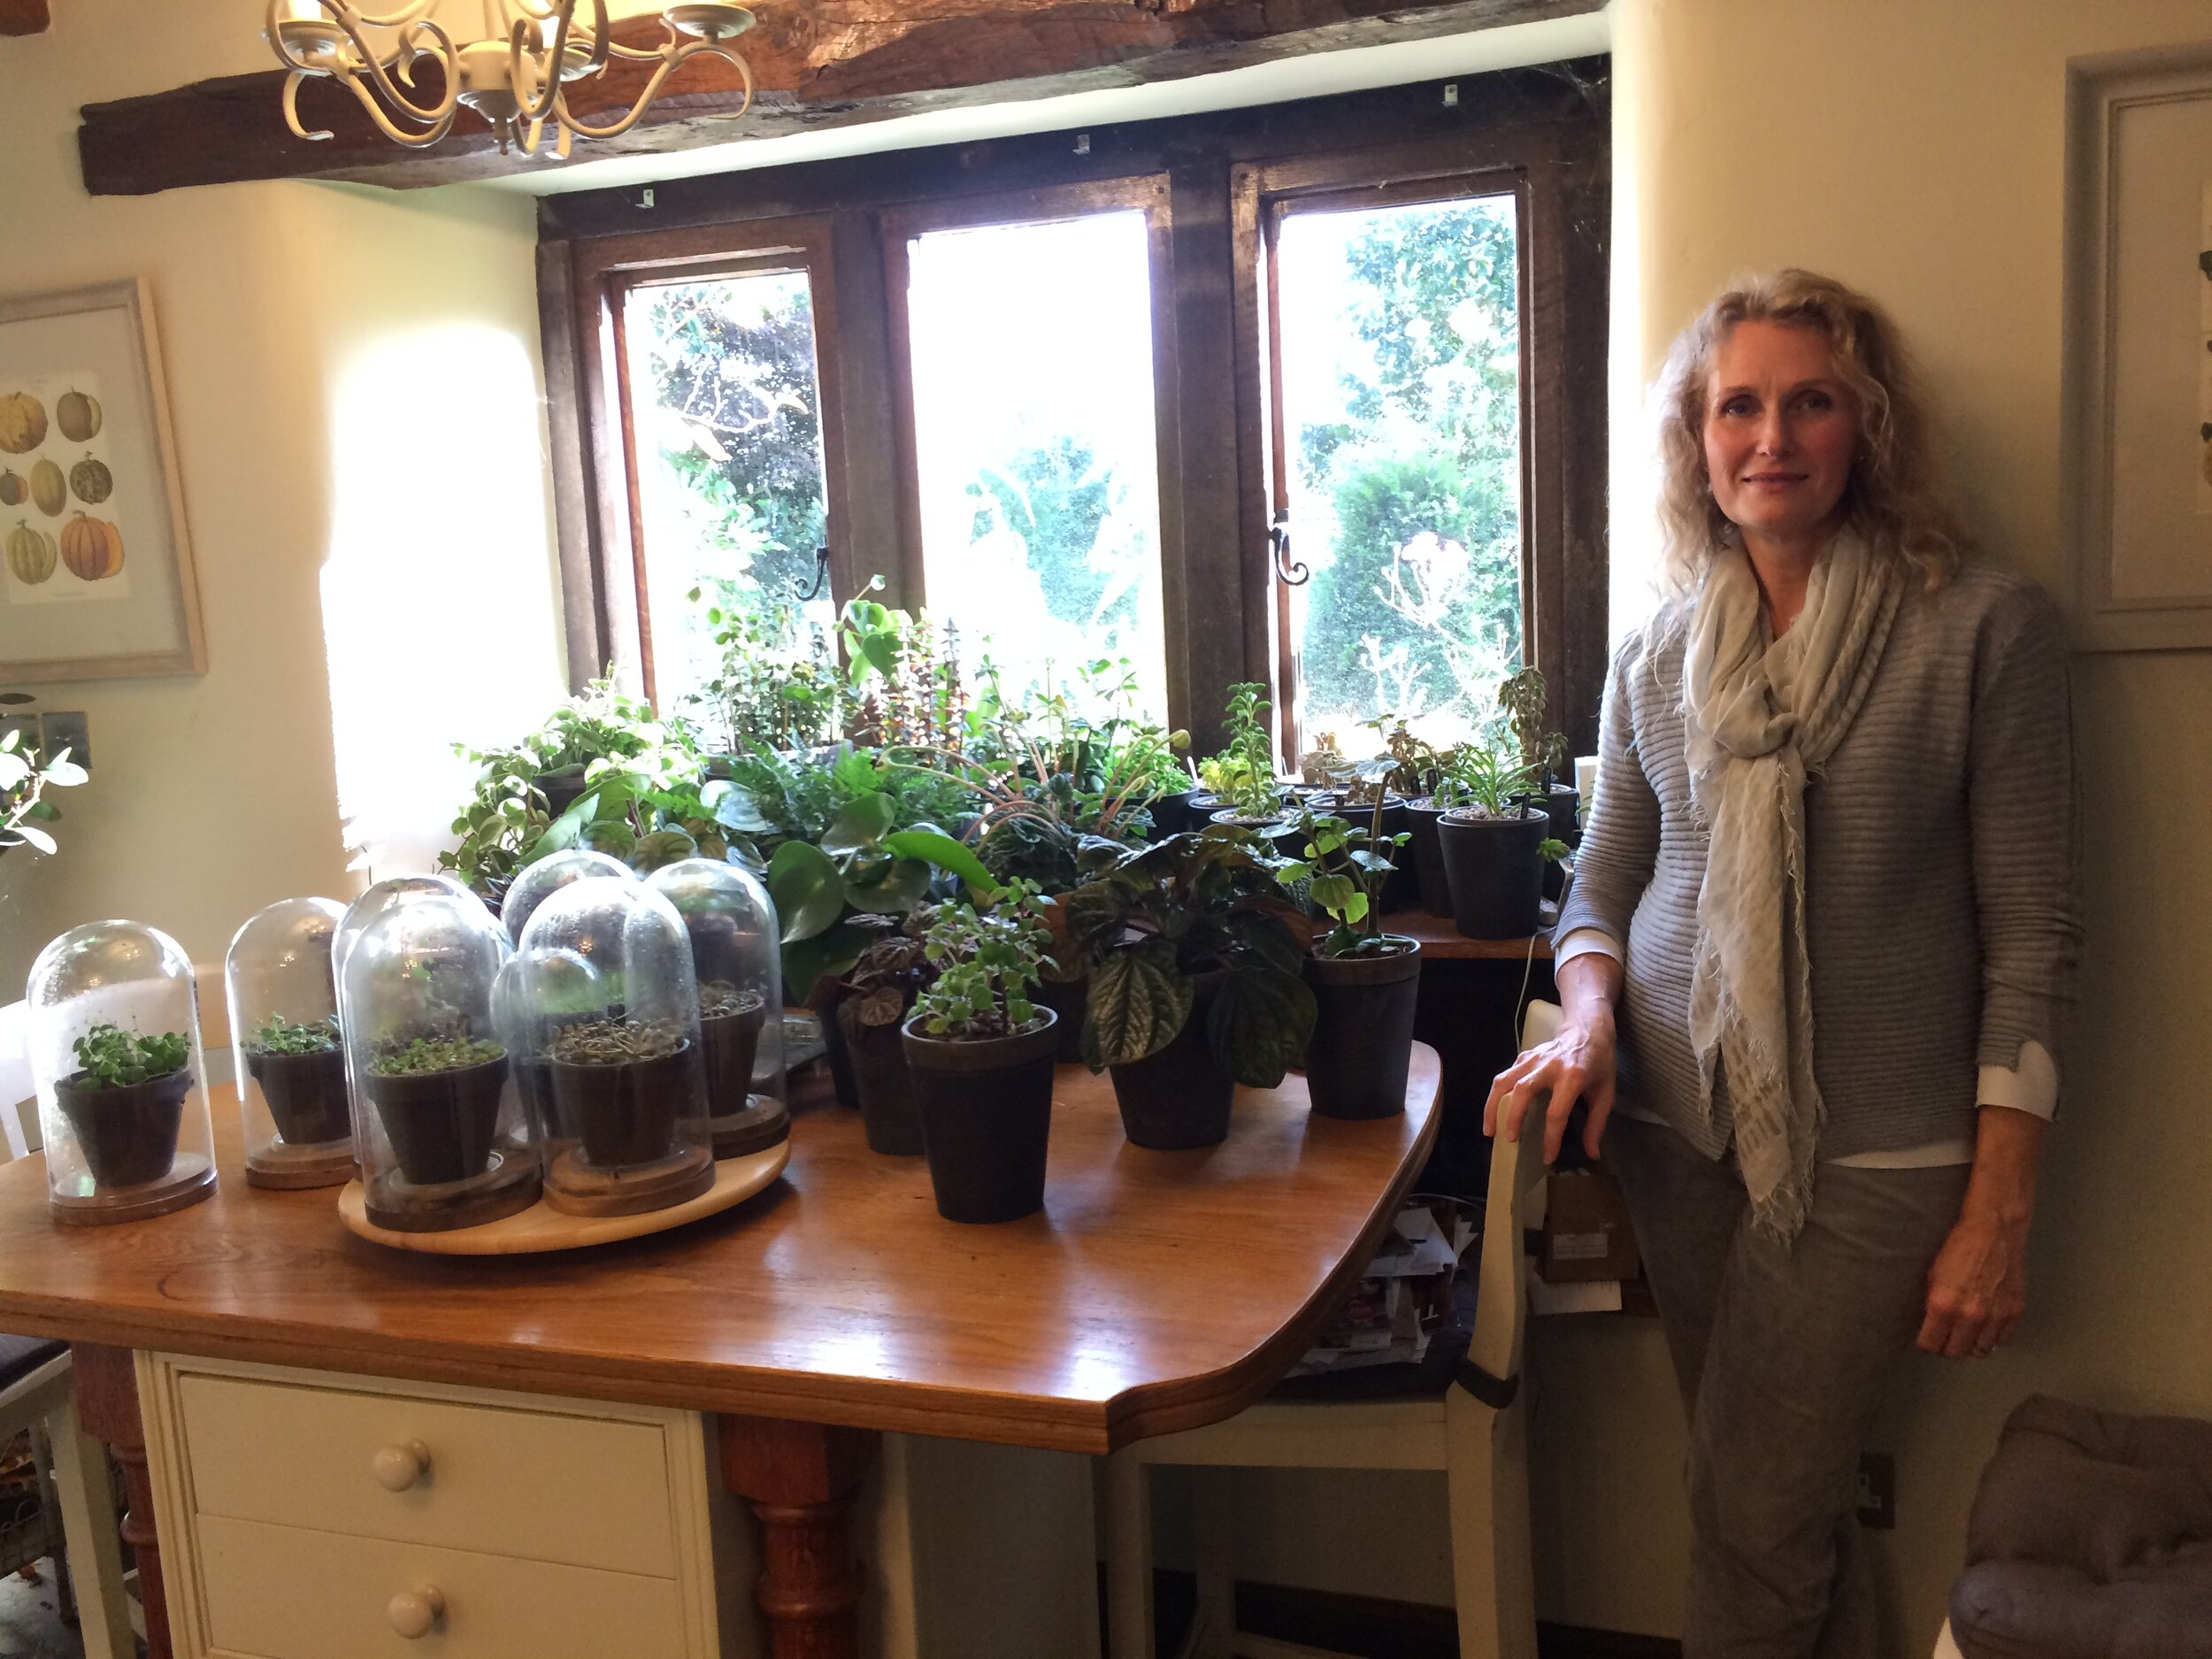 Sally with some of her peperomia collection in her kitchen. Photograph: Jane Perrone.